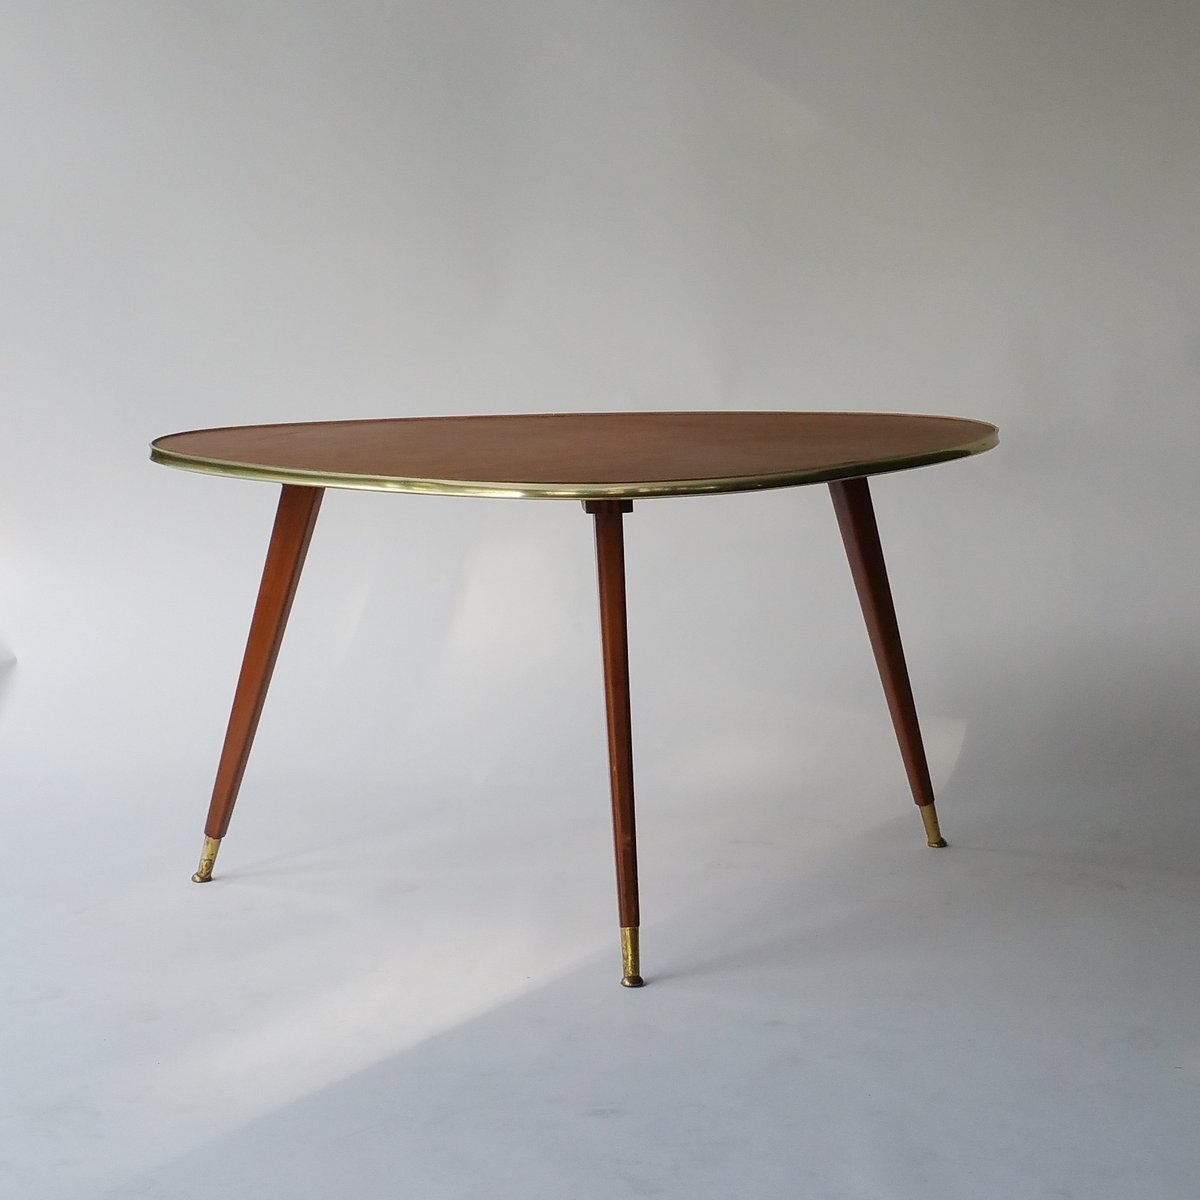 Beau Mid Century Coffee Table With Leather Top, 1950s